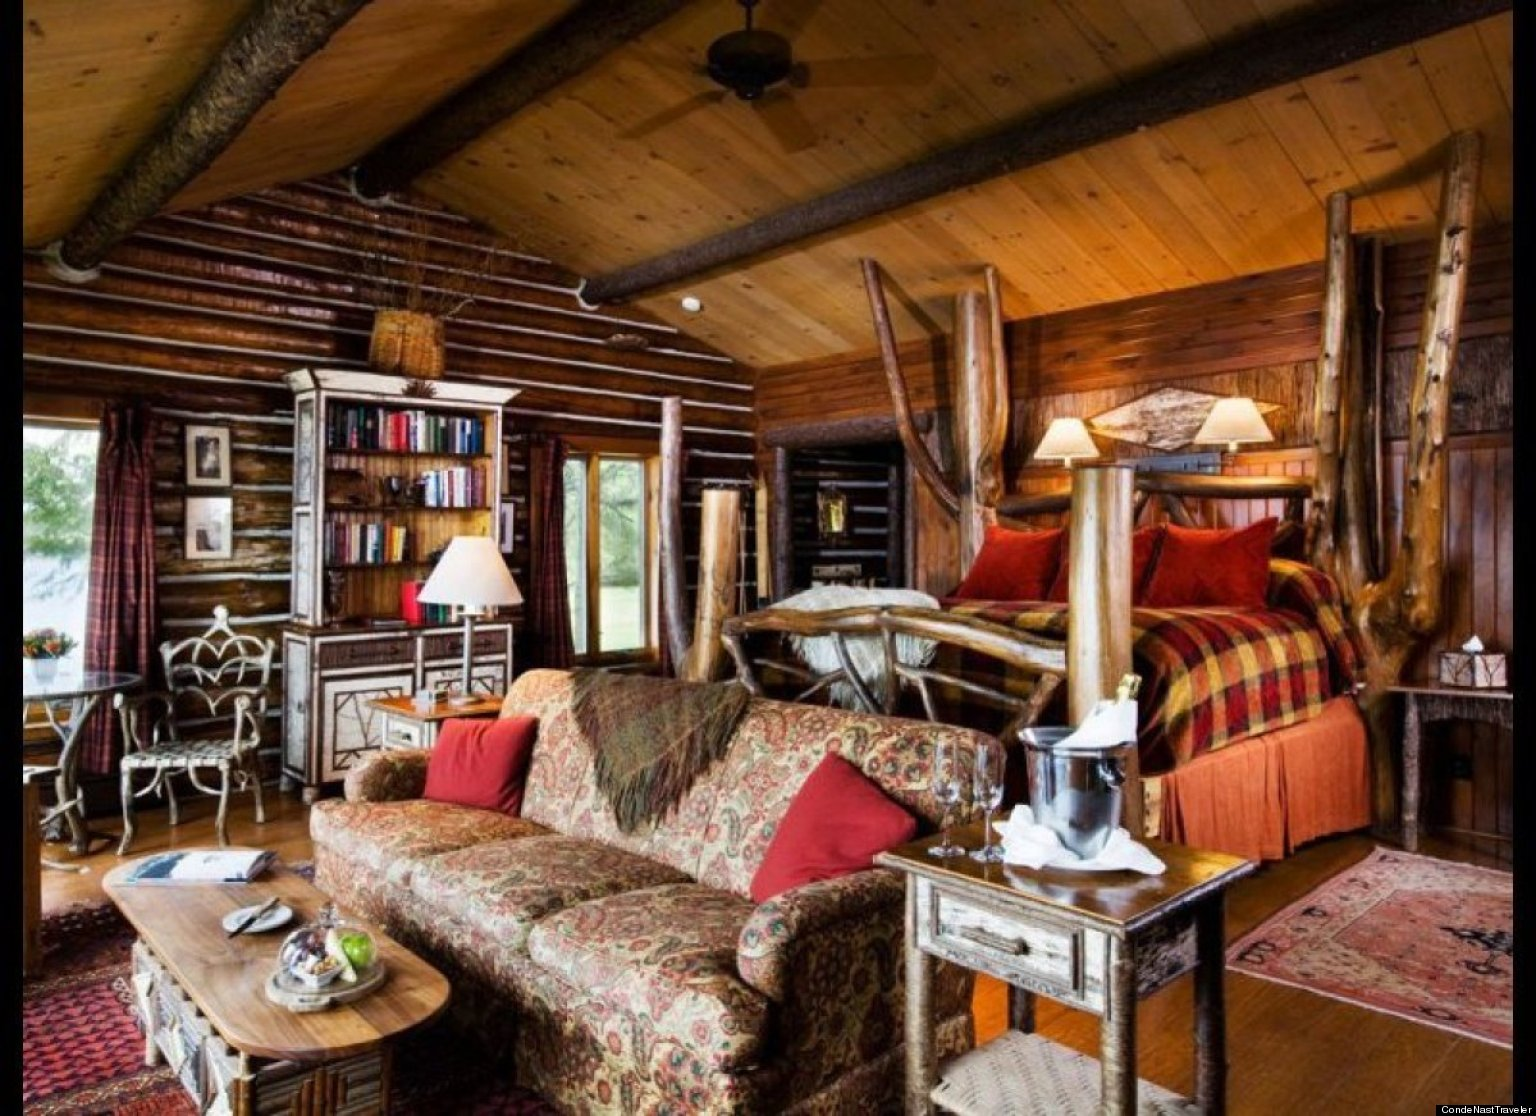 Winter Proof Log Cabins For A Snowstorm Getaway Photos